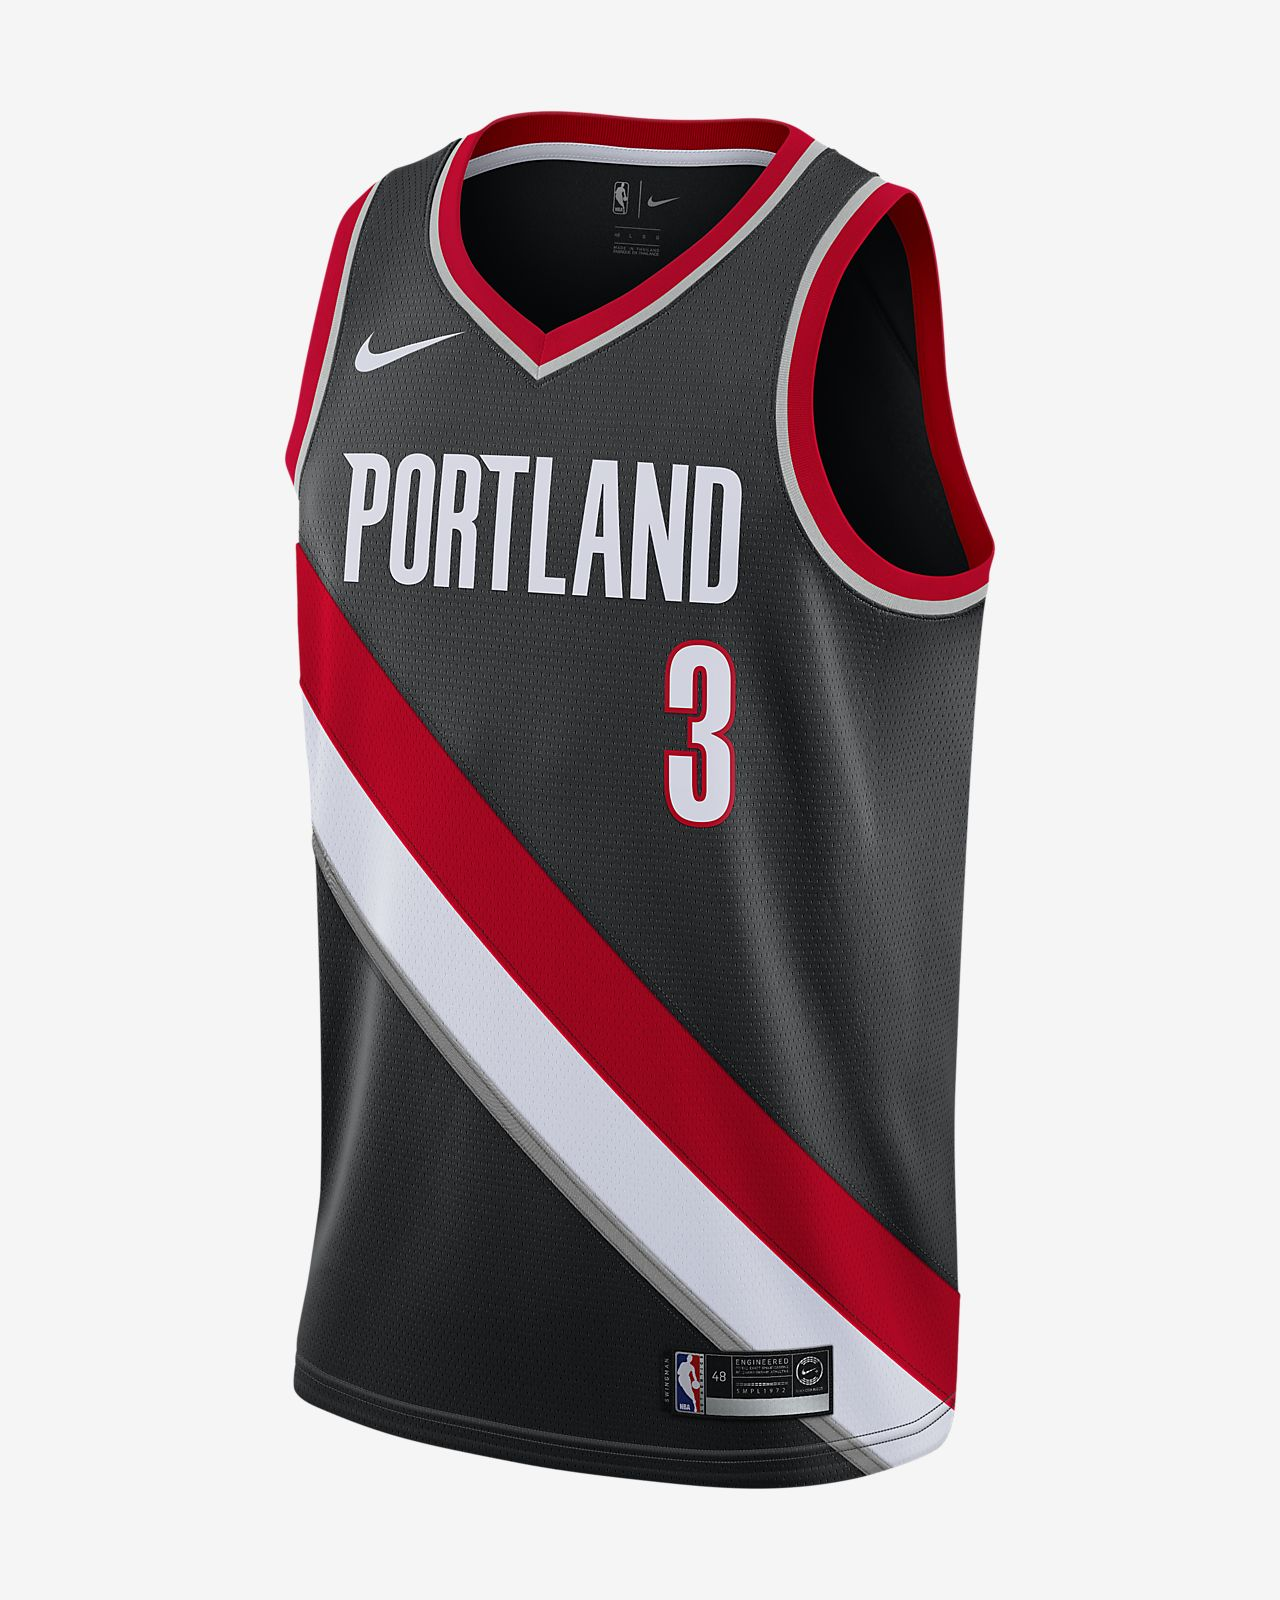 Men s Nike NBA Connected Jersey. C.J. McCollum Icon Edition Swingman  (Portland Trail Blazers) 5b4dcba5a